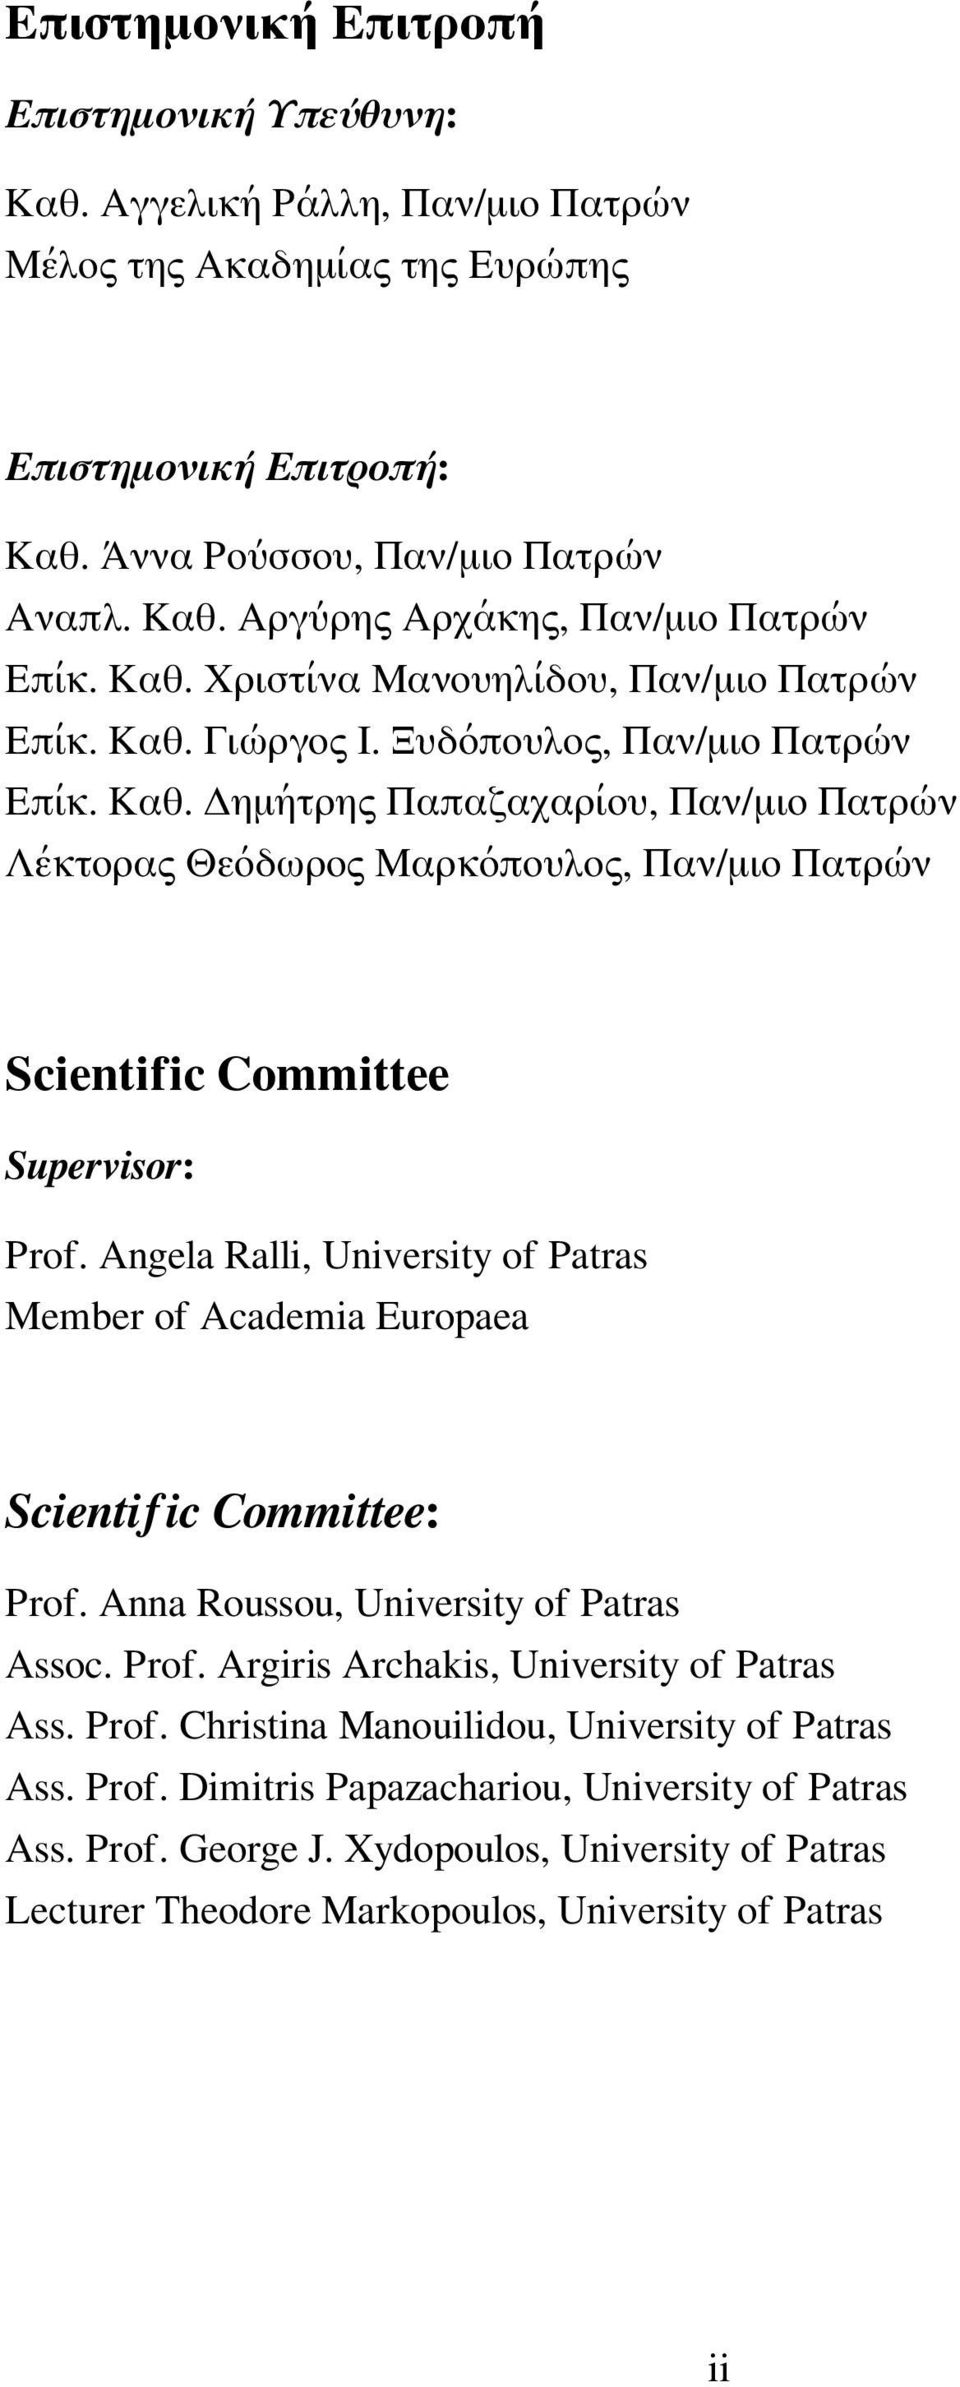 Angela Ralli, University of Patras Member of Academia Europaea Scientific Committee: Prof. Anna Roussou, University of Patras Assoc. Prof. Argiris Archakis, University of Patras Ass. Prof. Christina Manouilidou, University of Patras Ass.